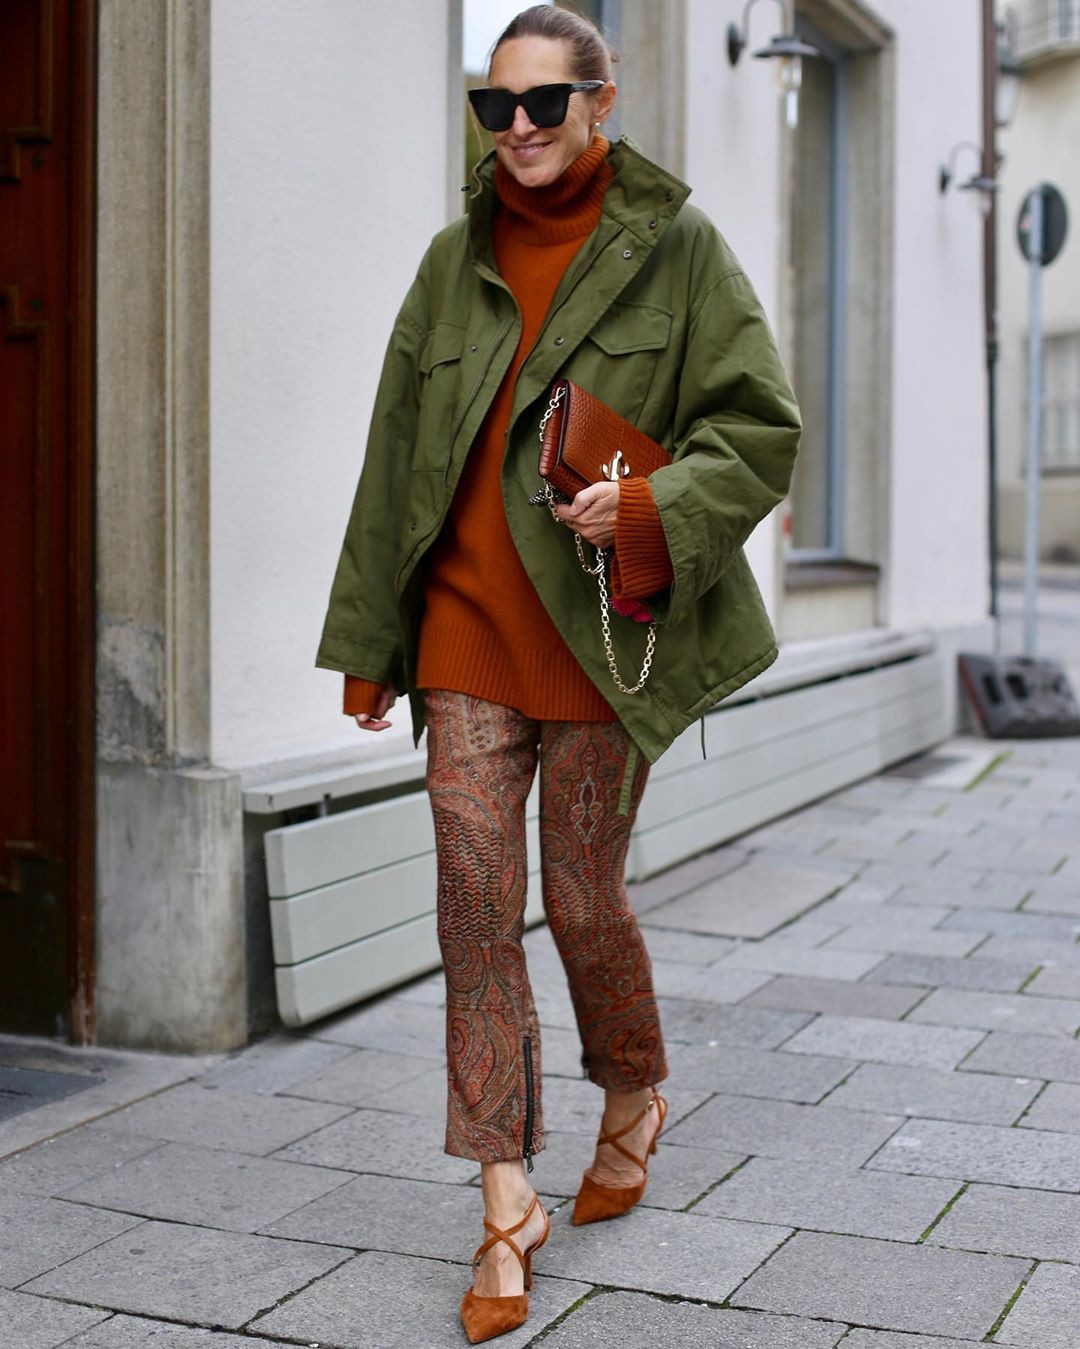 Orange and brown colour dress with trousers, shorts, jacket